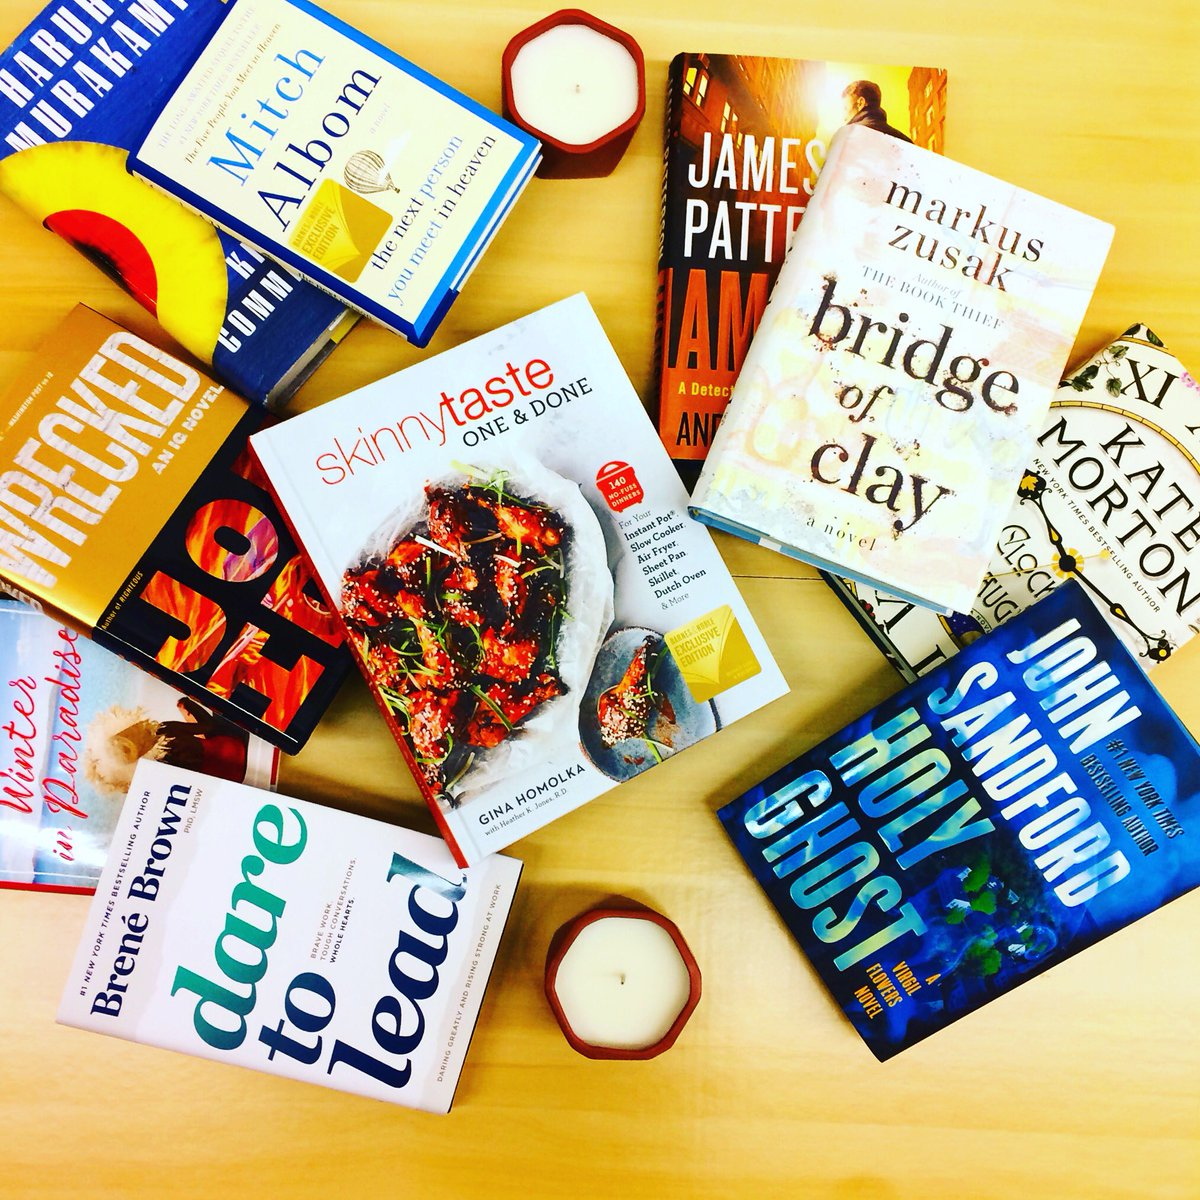 It's #NewReleaseTuesday, #readers! We've got so many #newbooks to share with you this week! 📚📚📚